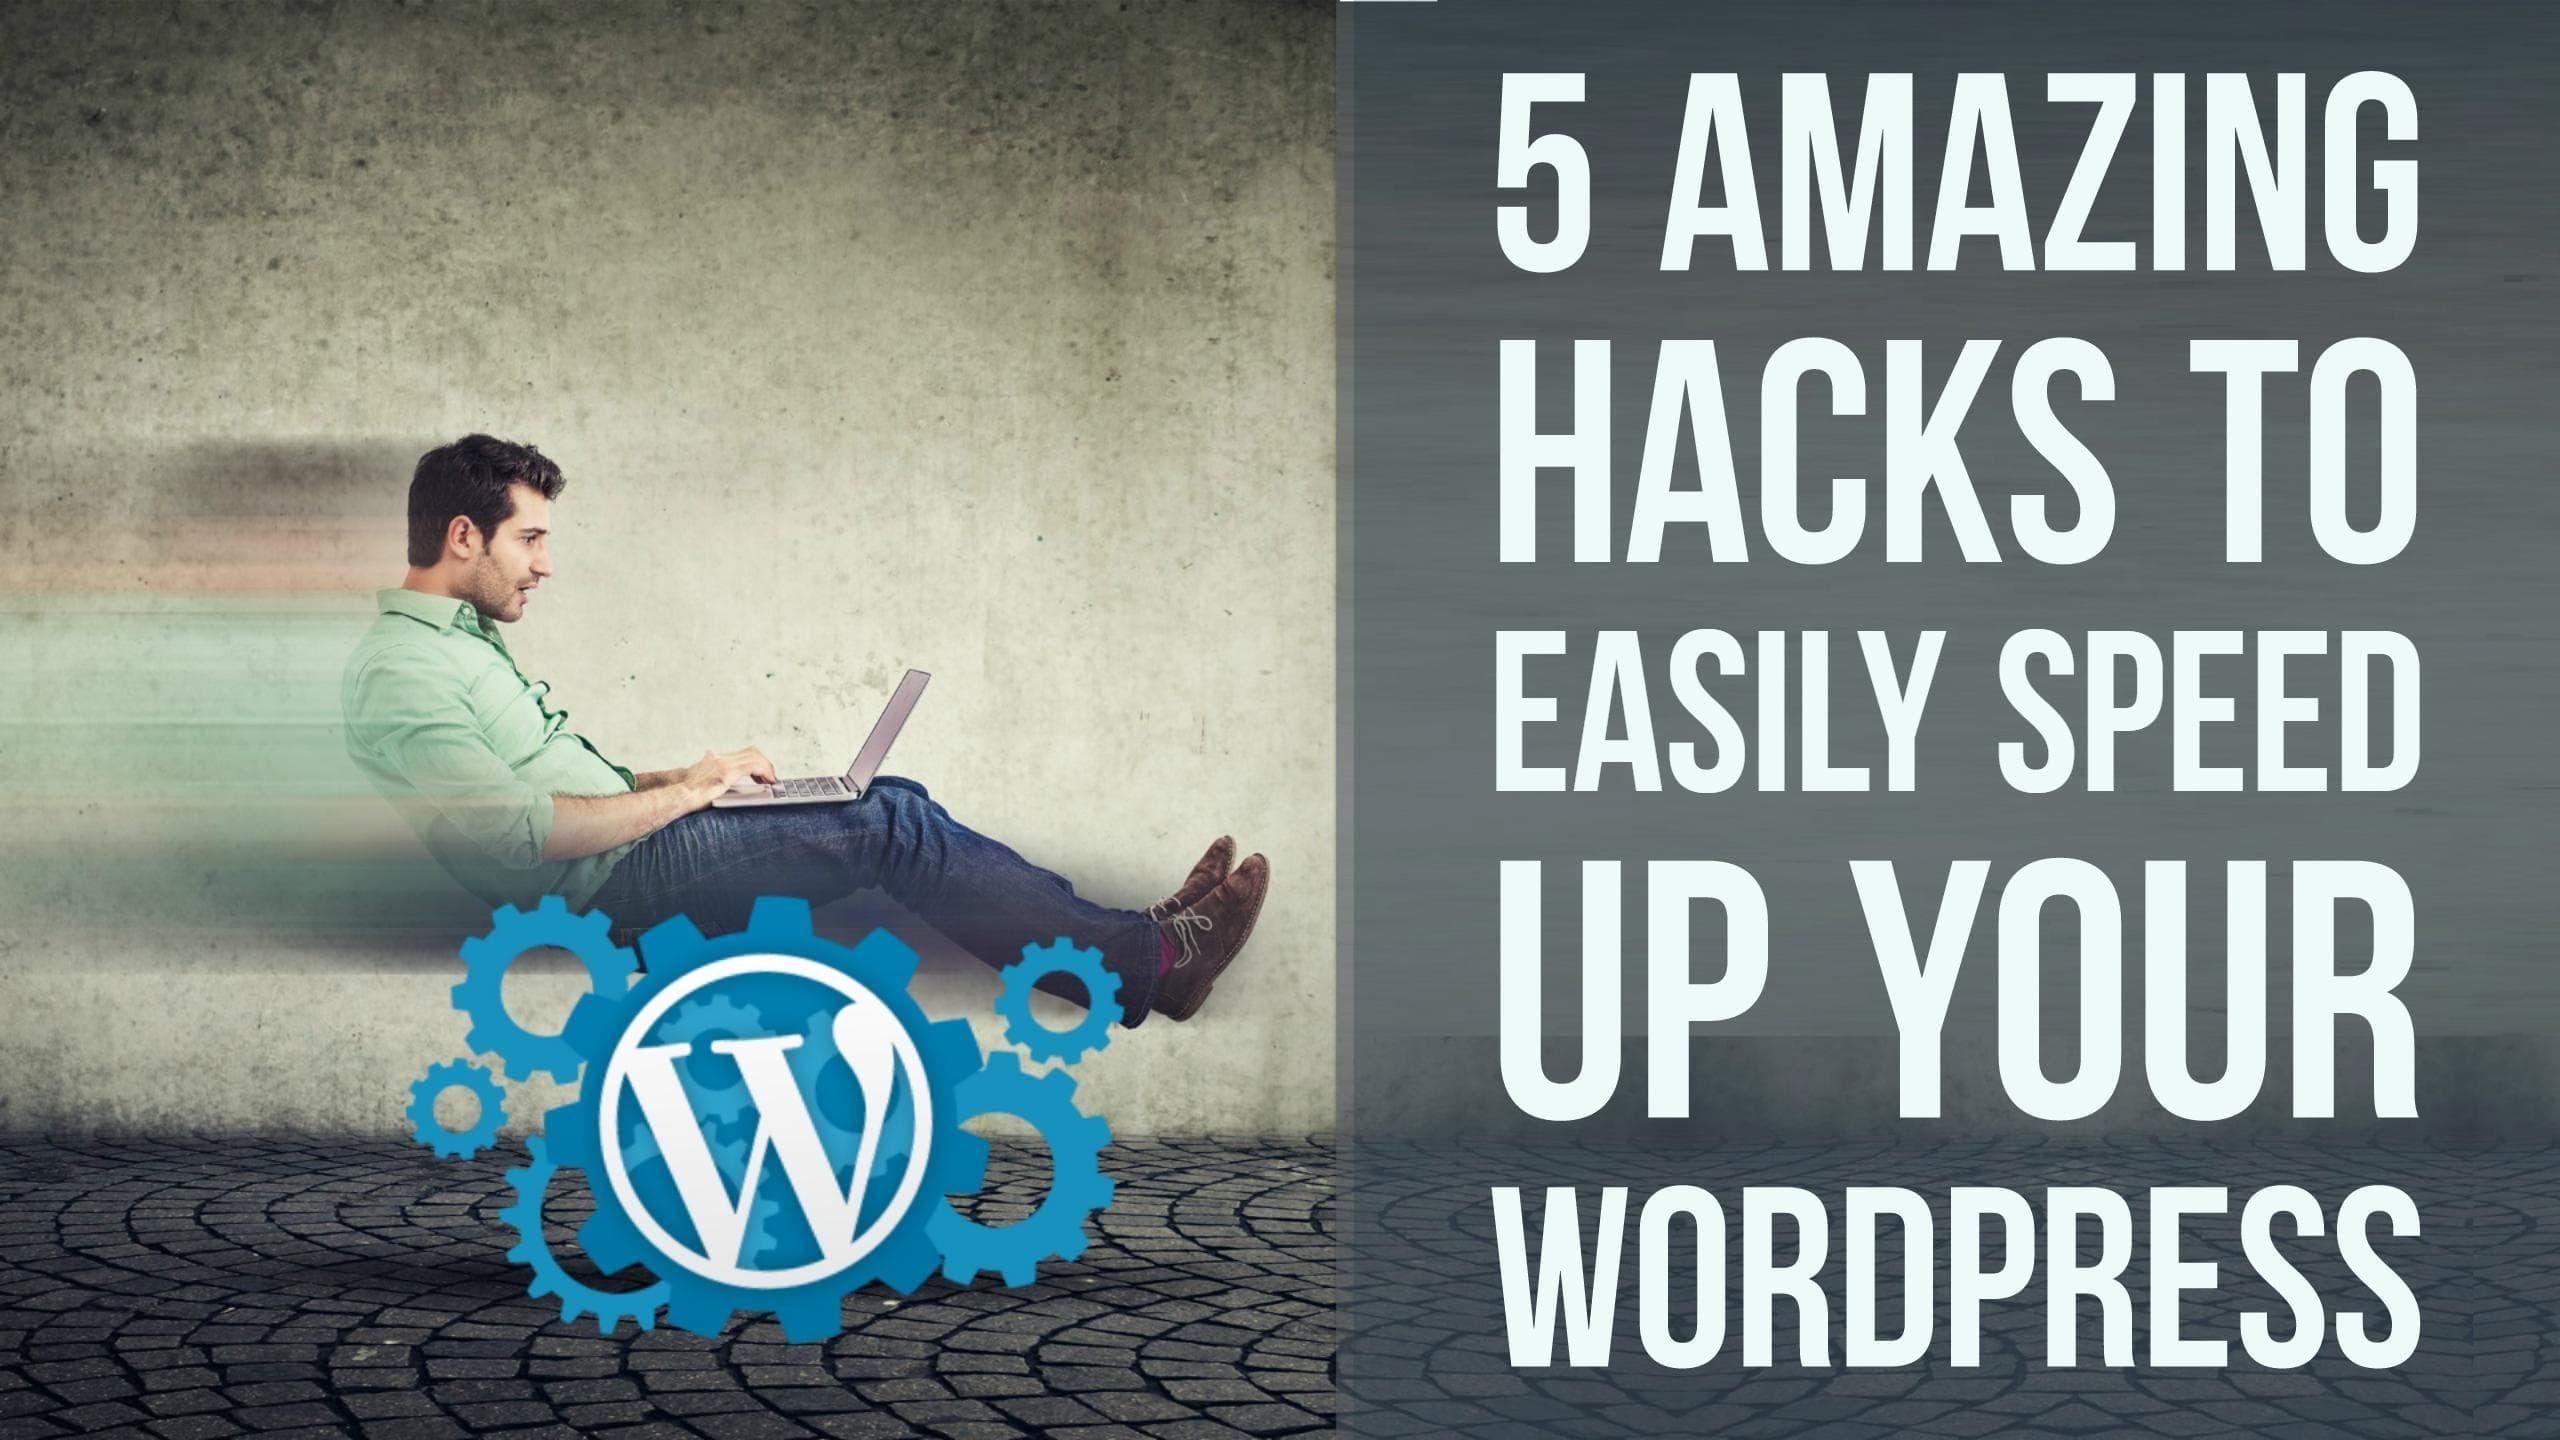 5 AMAZING HACKS TO EASILY SPEED UP YOUR WORDPRESS - Francisco Moriones - Skillshare - 웹